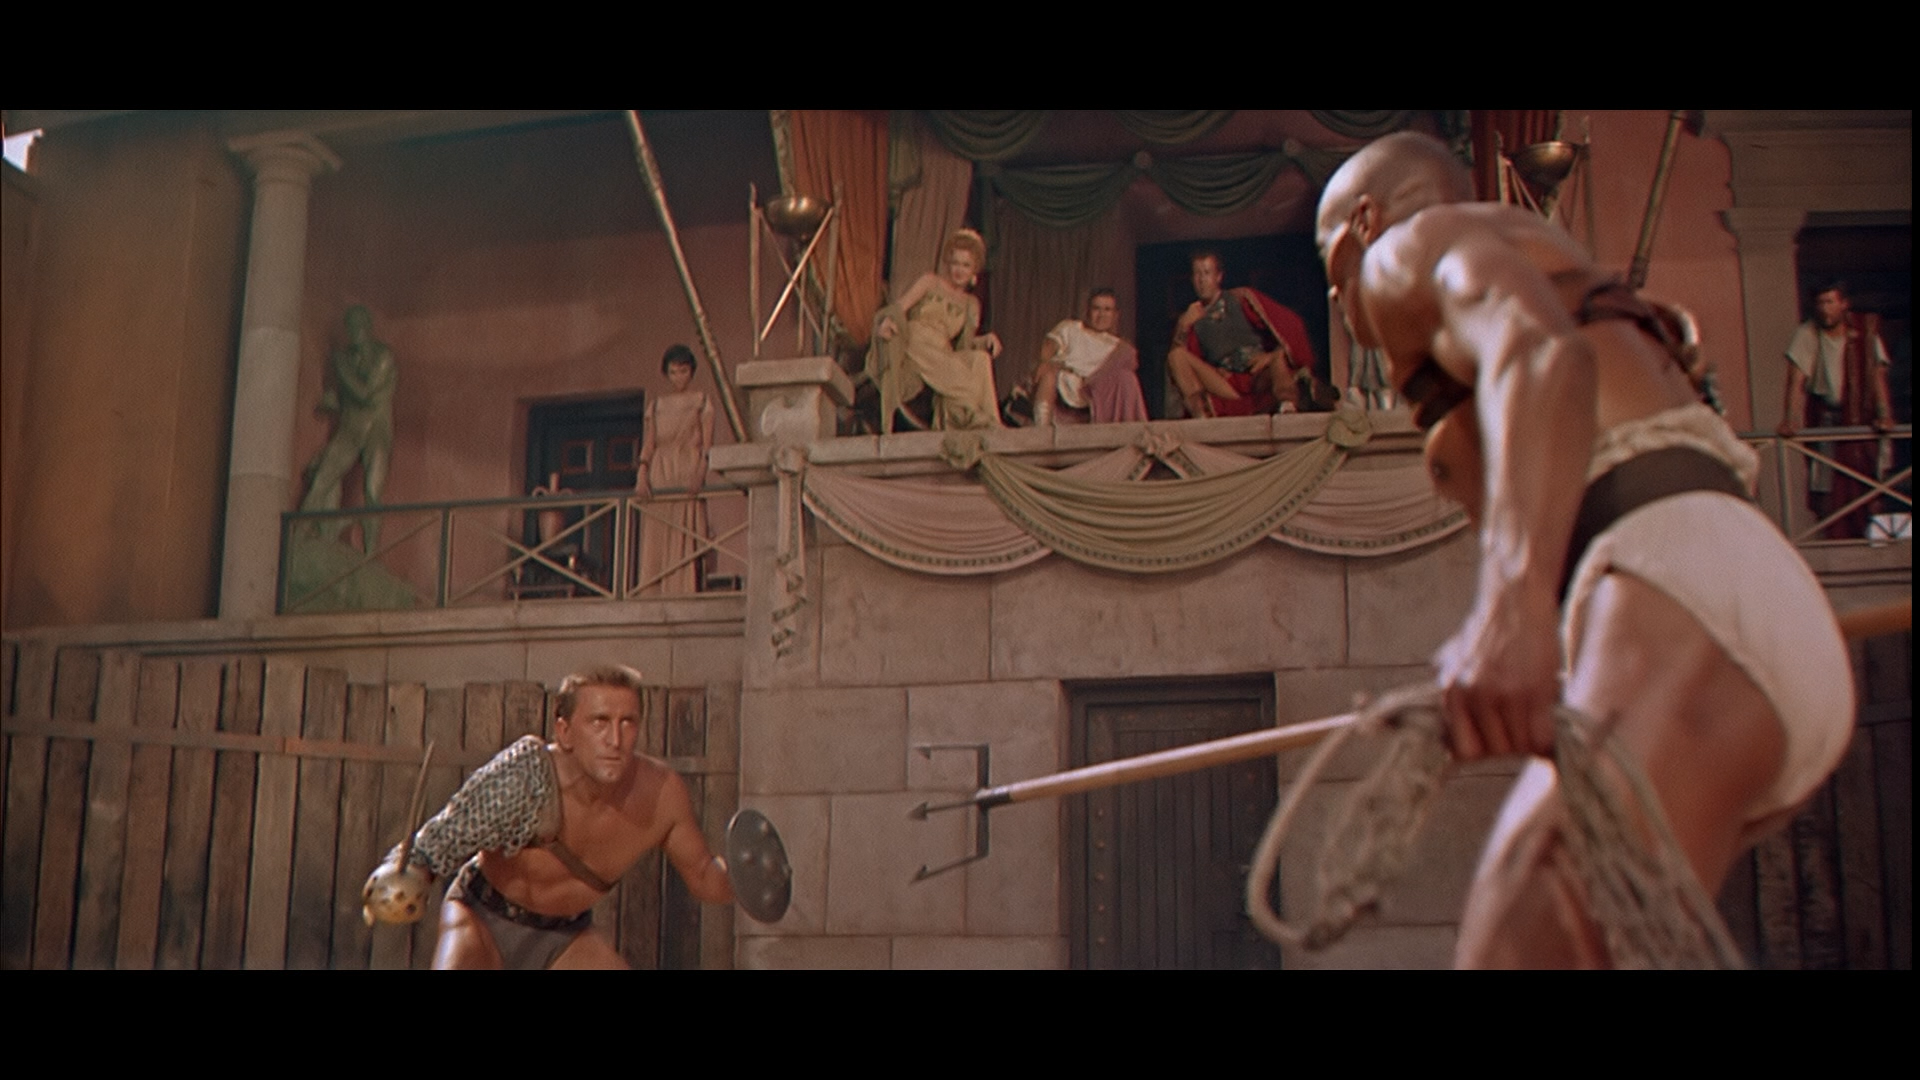 Was spartacus real